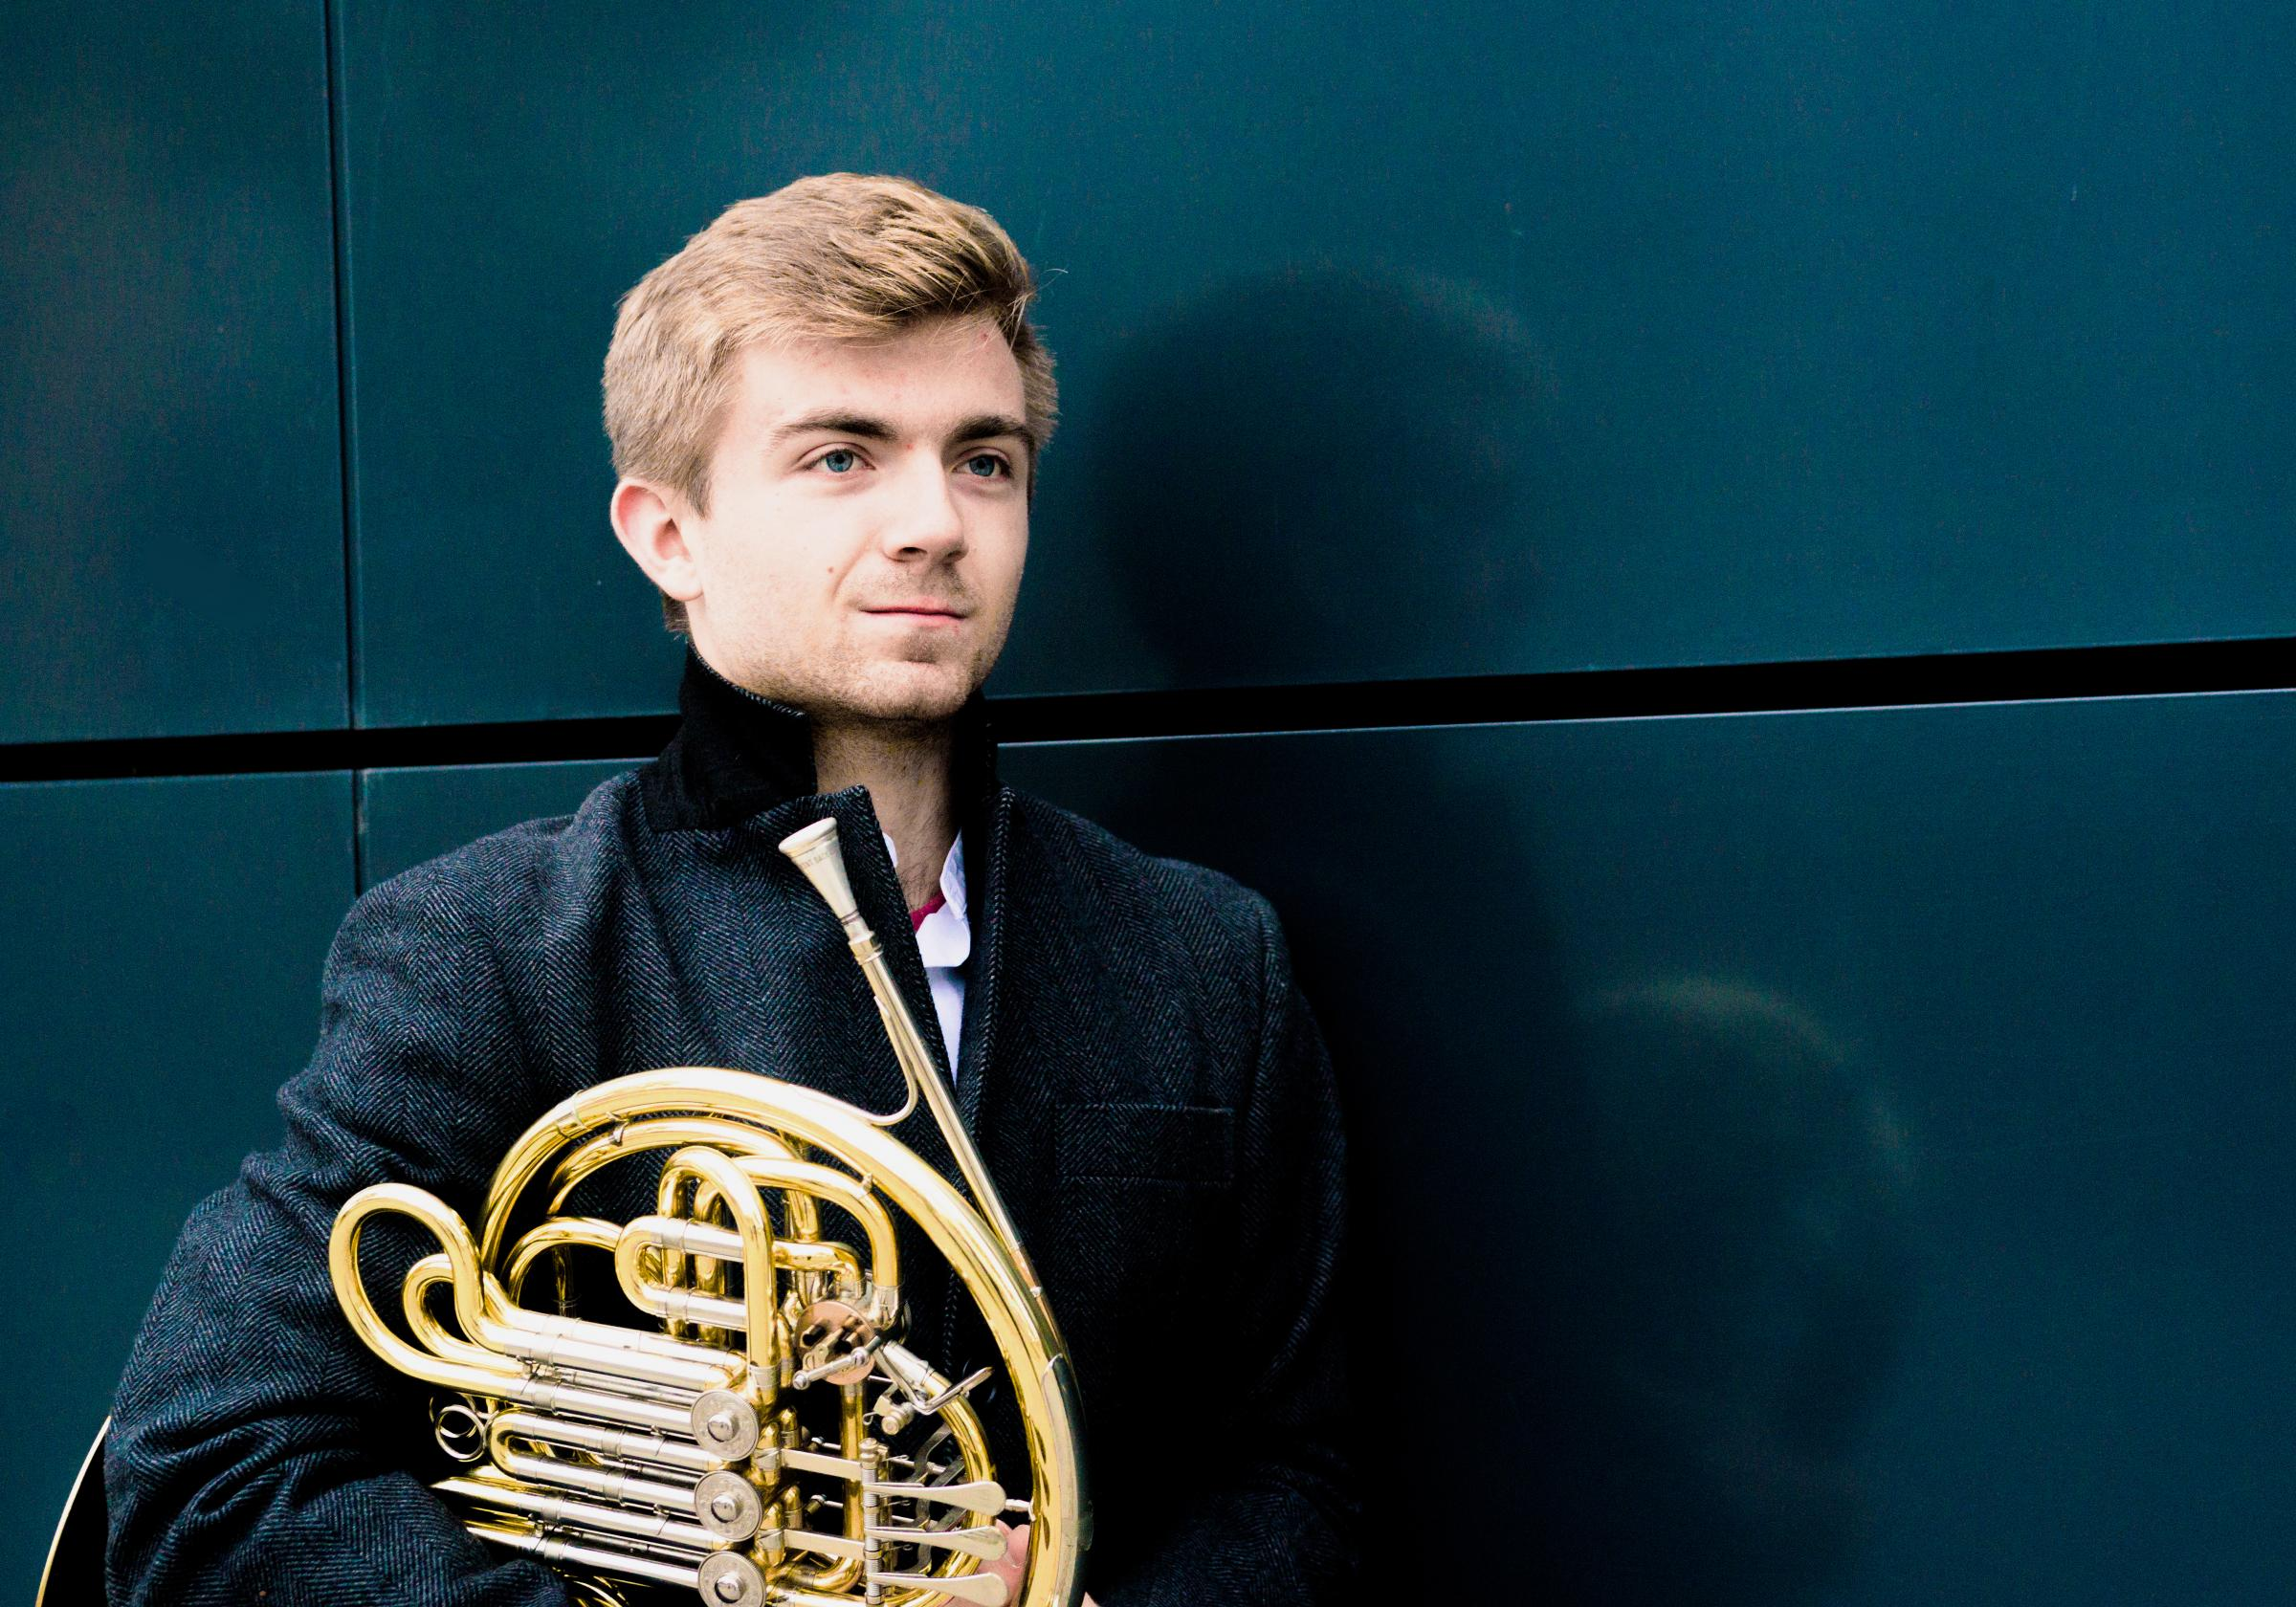 Concert soloist Ben Goldscheider brought true Mozartian characterisation to his reading of the composer's third Horn Concerto with impressive technical control, lovely tone quality, a wide dynamic range, and an understanding of the music's geography.